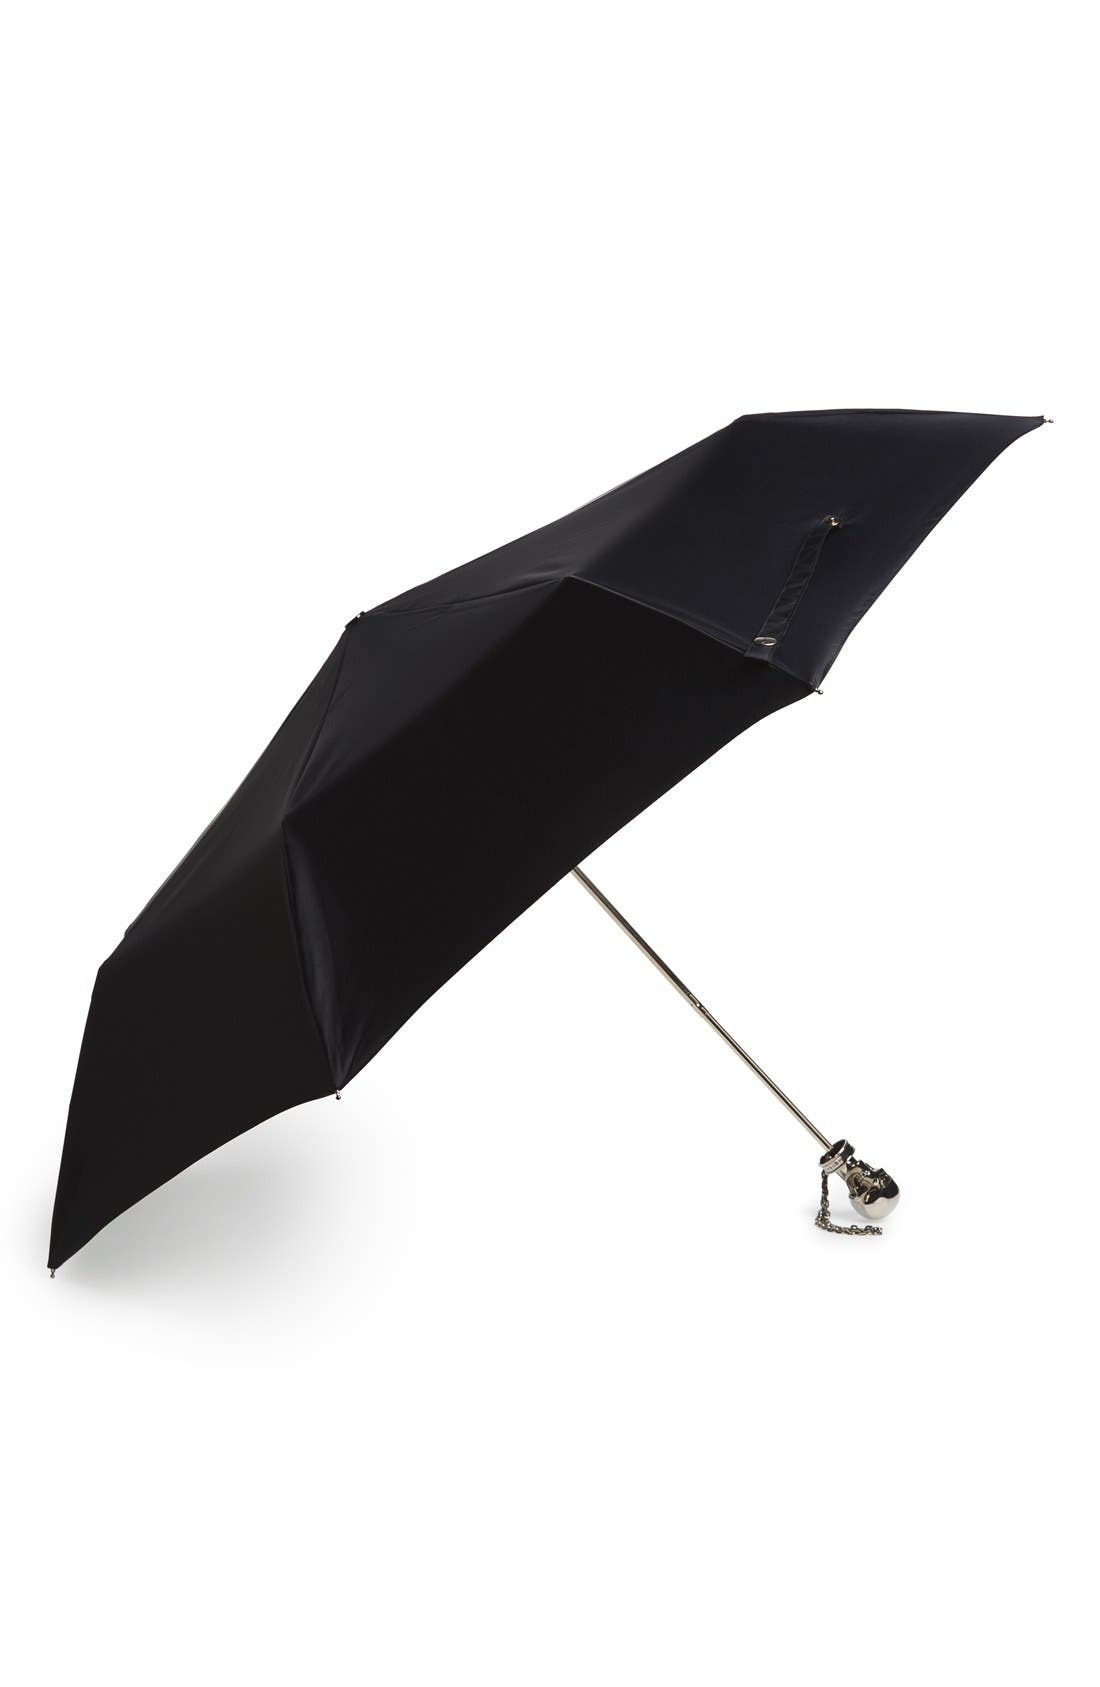 Alternate Image 1 Selected - Alexander McQueen Folding Umbrella